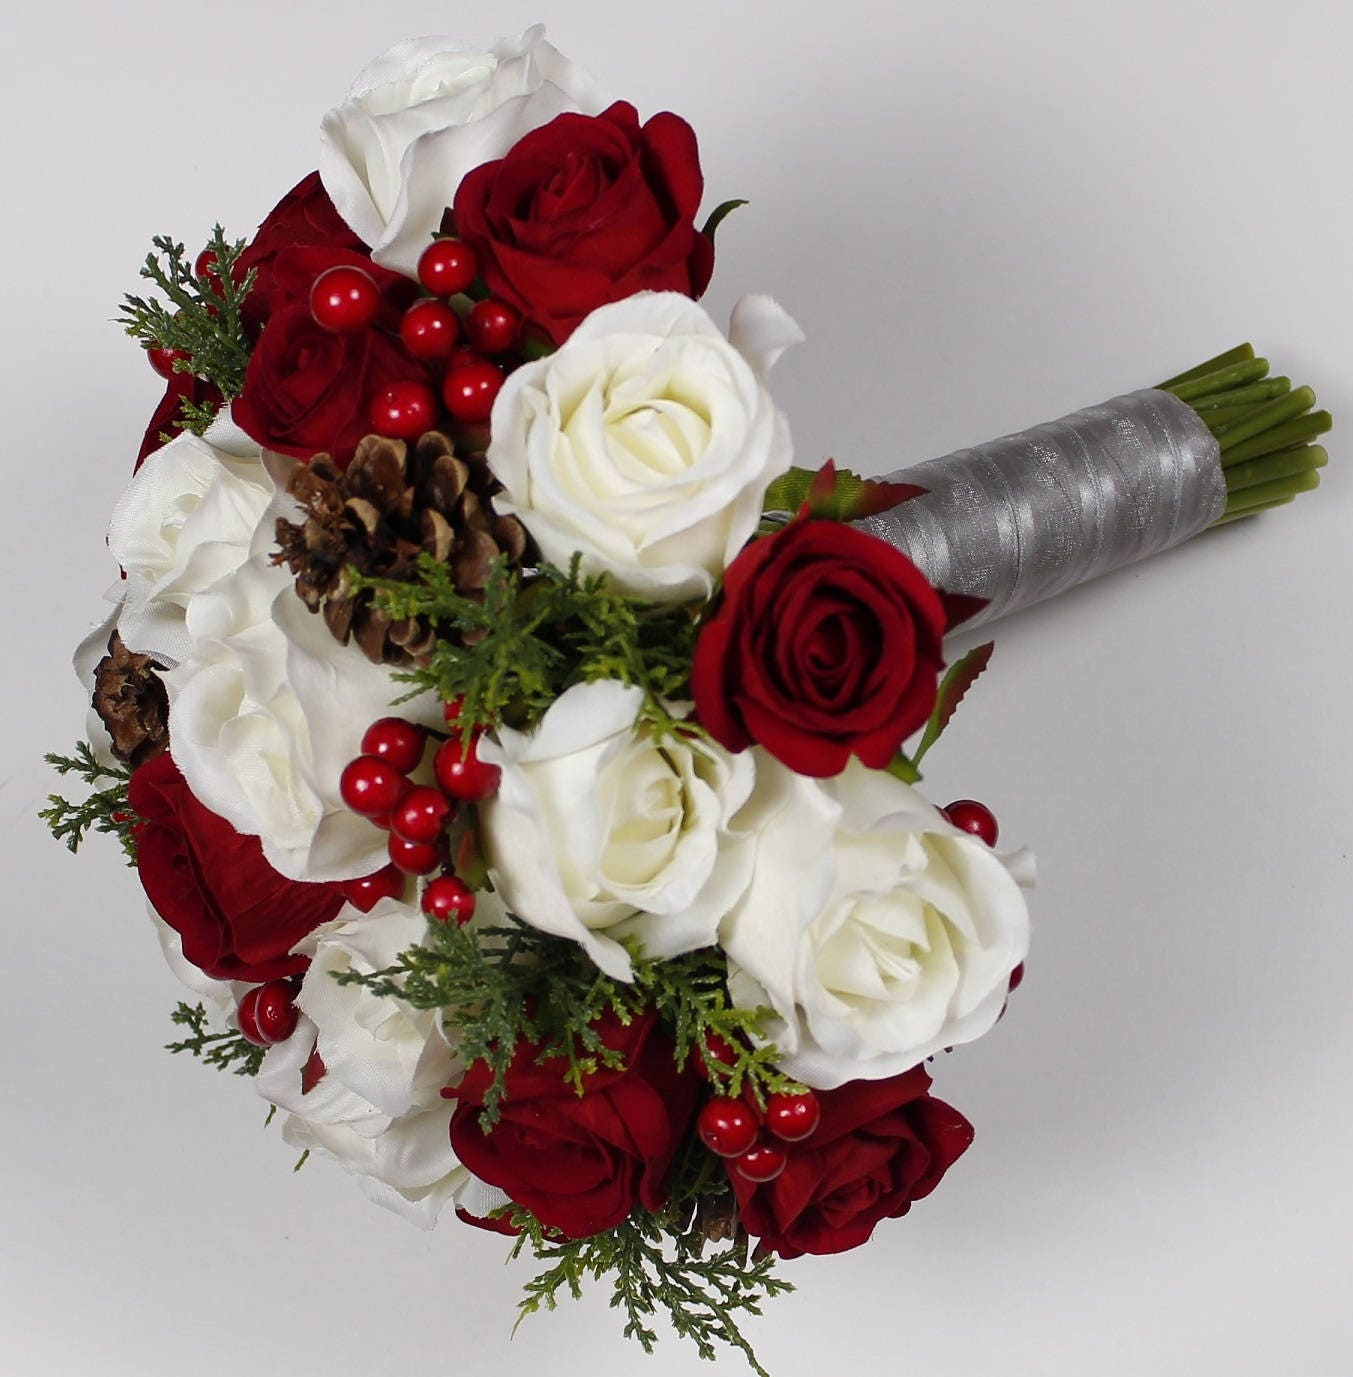 Christmas Wedding Bouquets And Flowers: Christmas Wedding Bouquet Christmas Bridal Bouquet Red